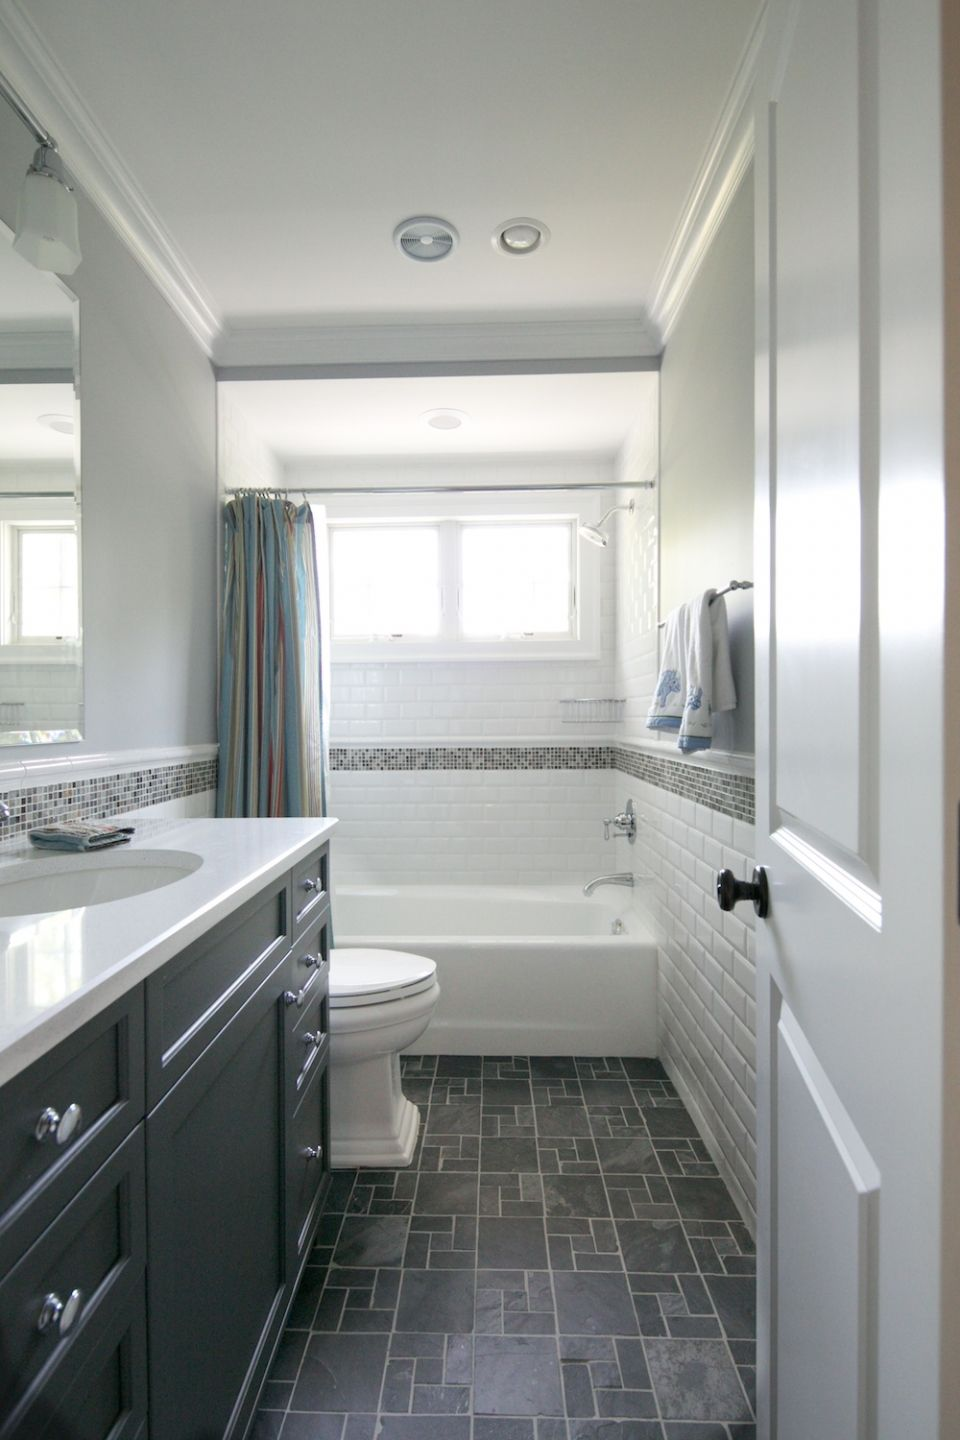 Tiny Hall Bath, Subway Tile, Dark Floors, Dark Vanity. Classic And Dramatic Part 60